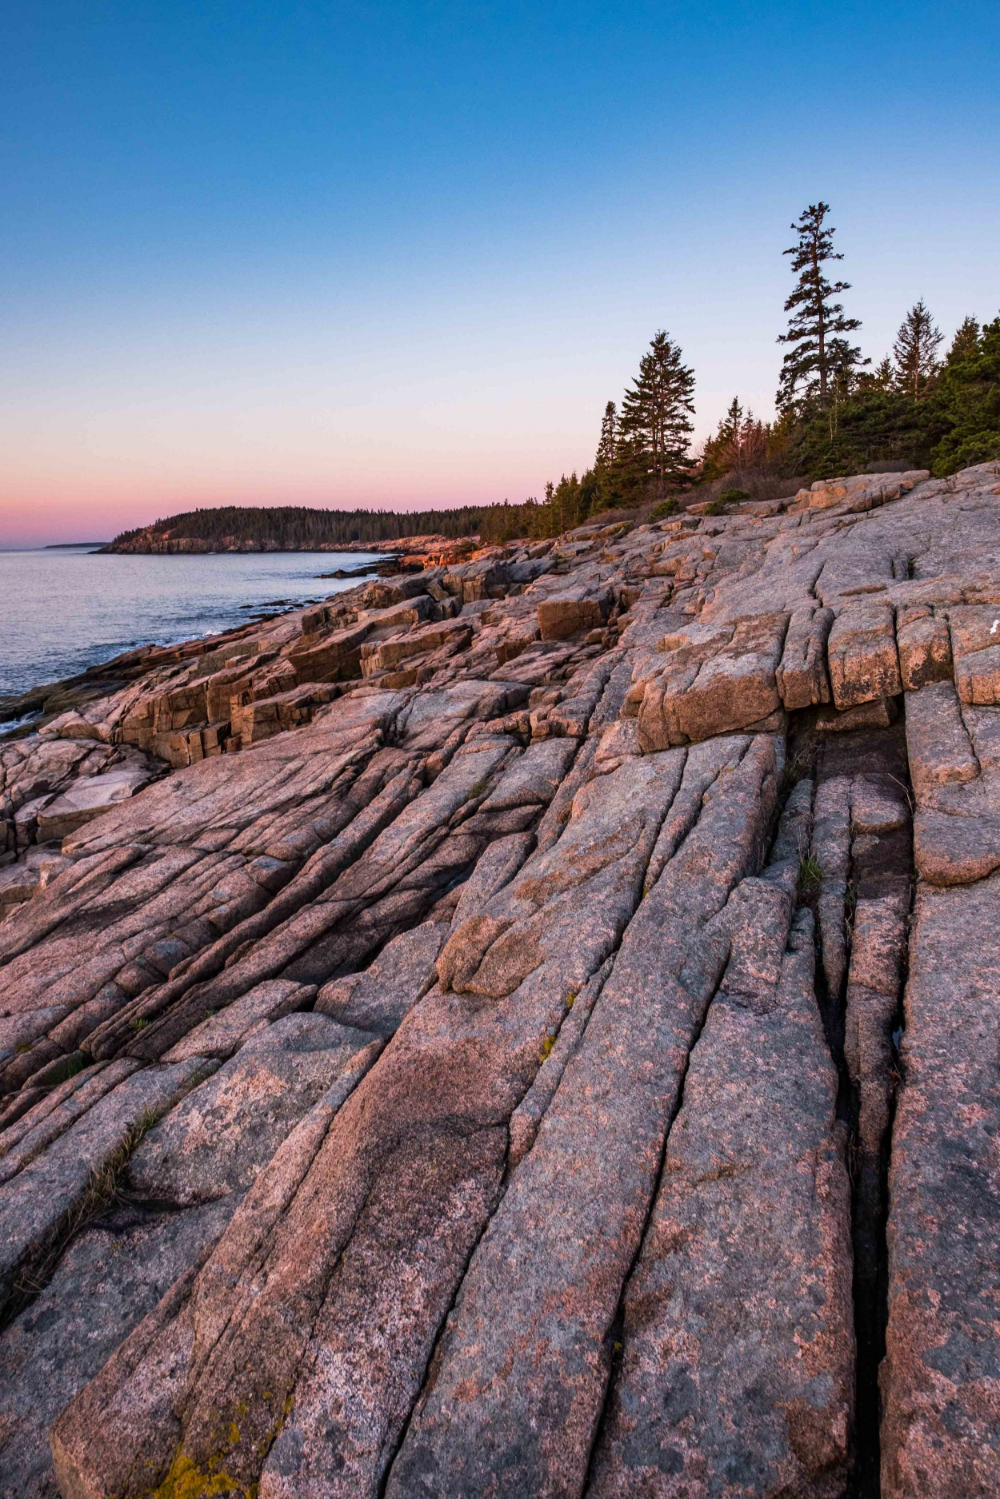 The Coastal Trail (from Sand Beach to Otter Point) at sunset.